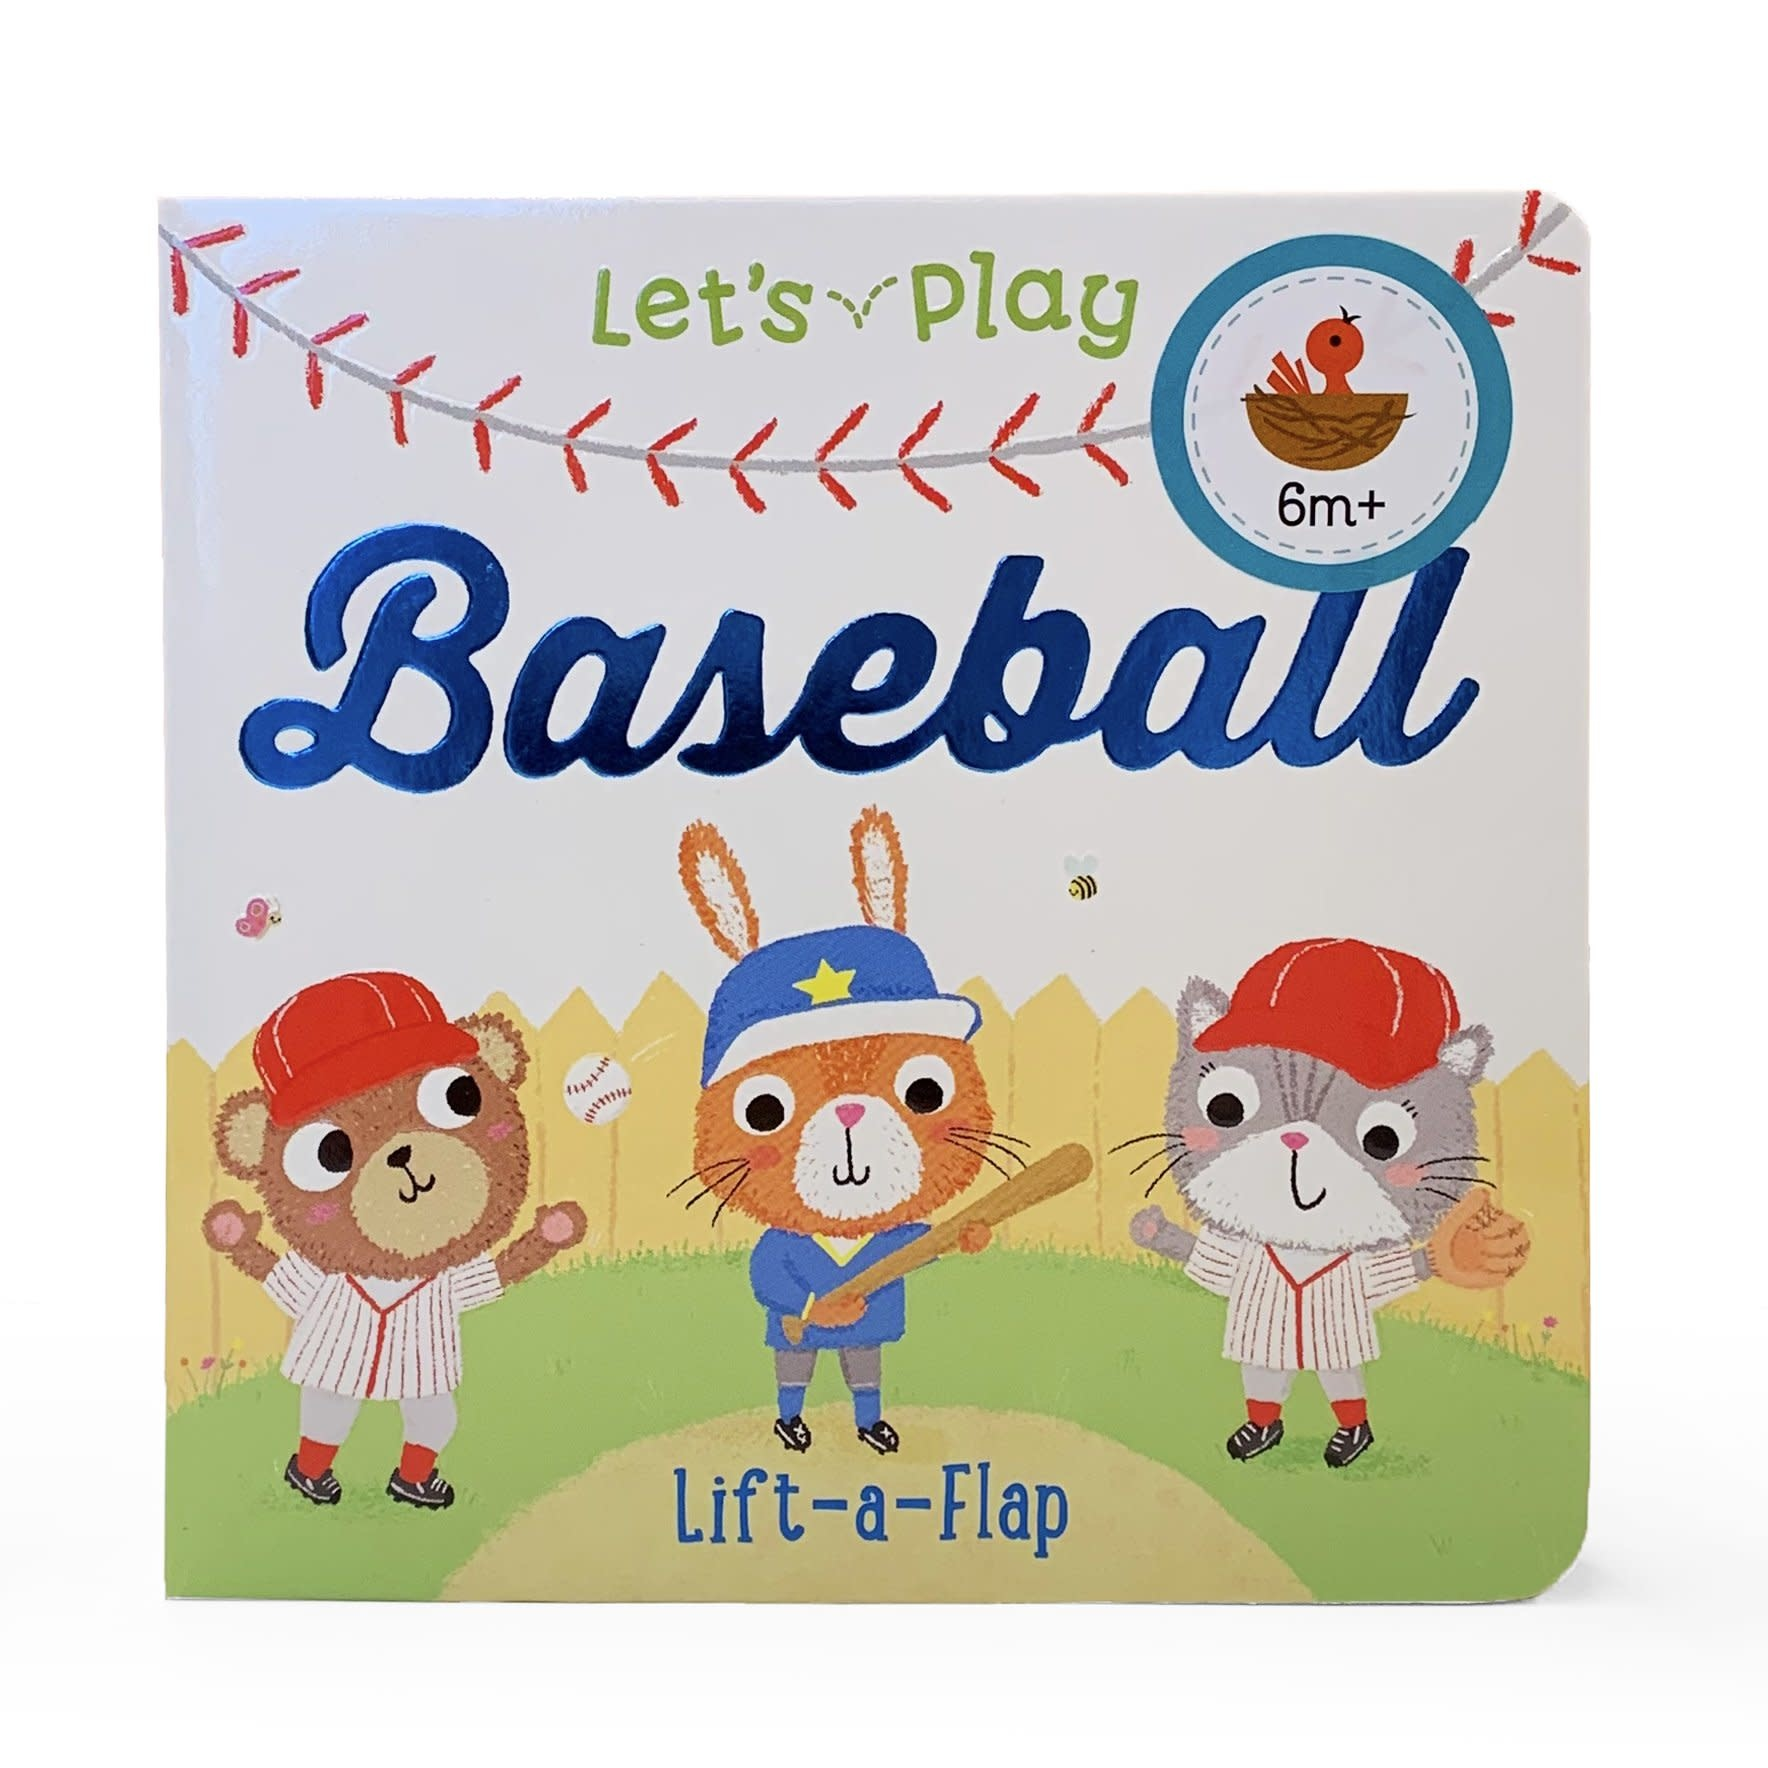 Cottage Door Press Let's Play Baseball Book